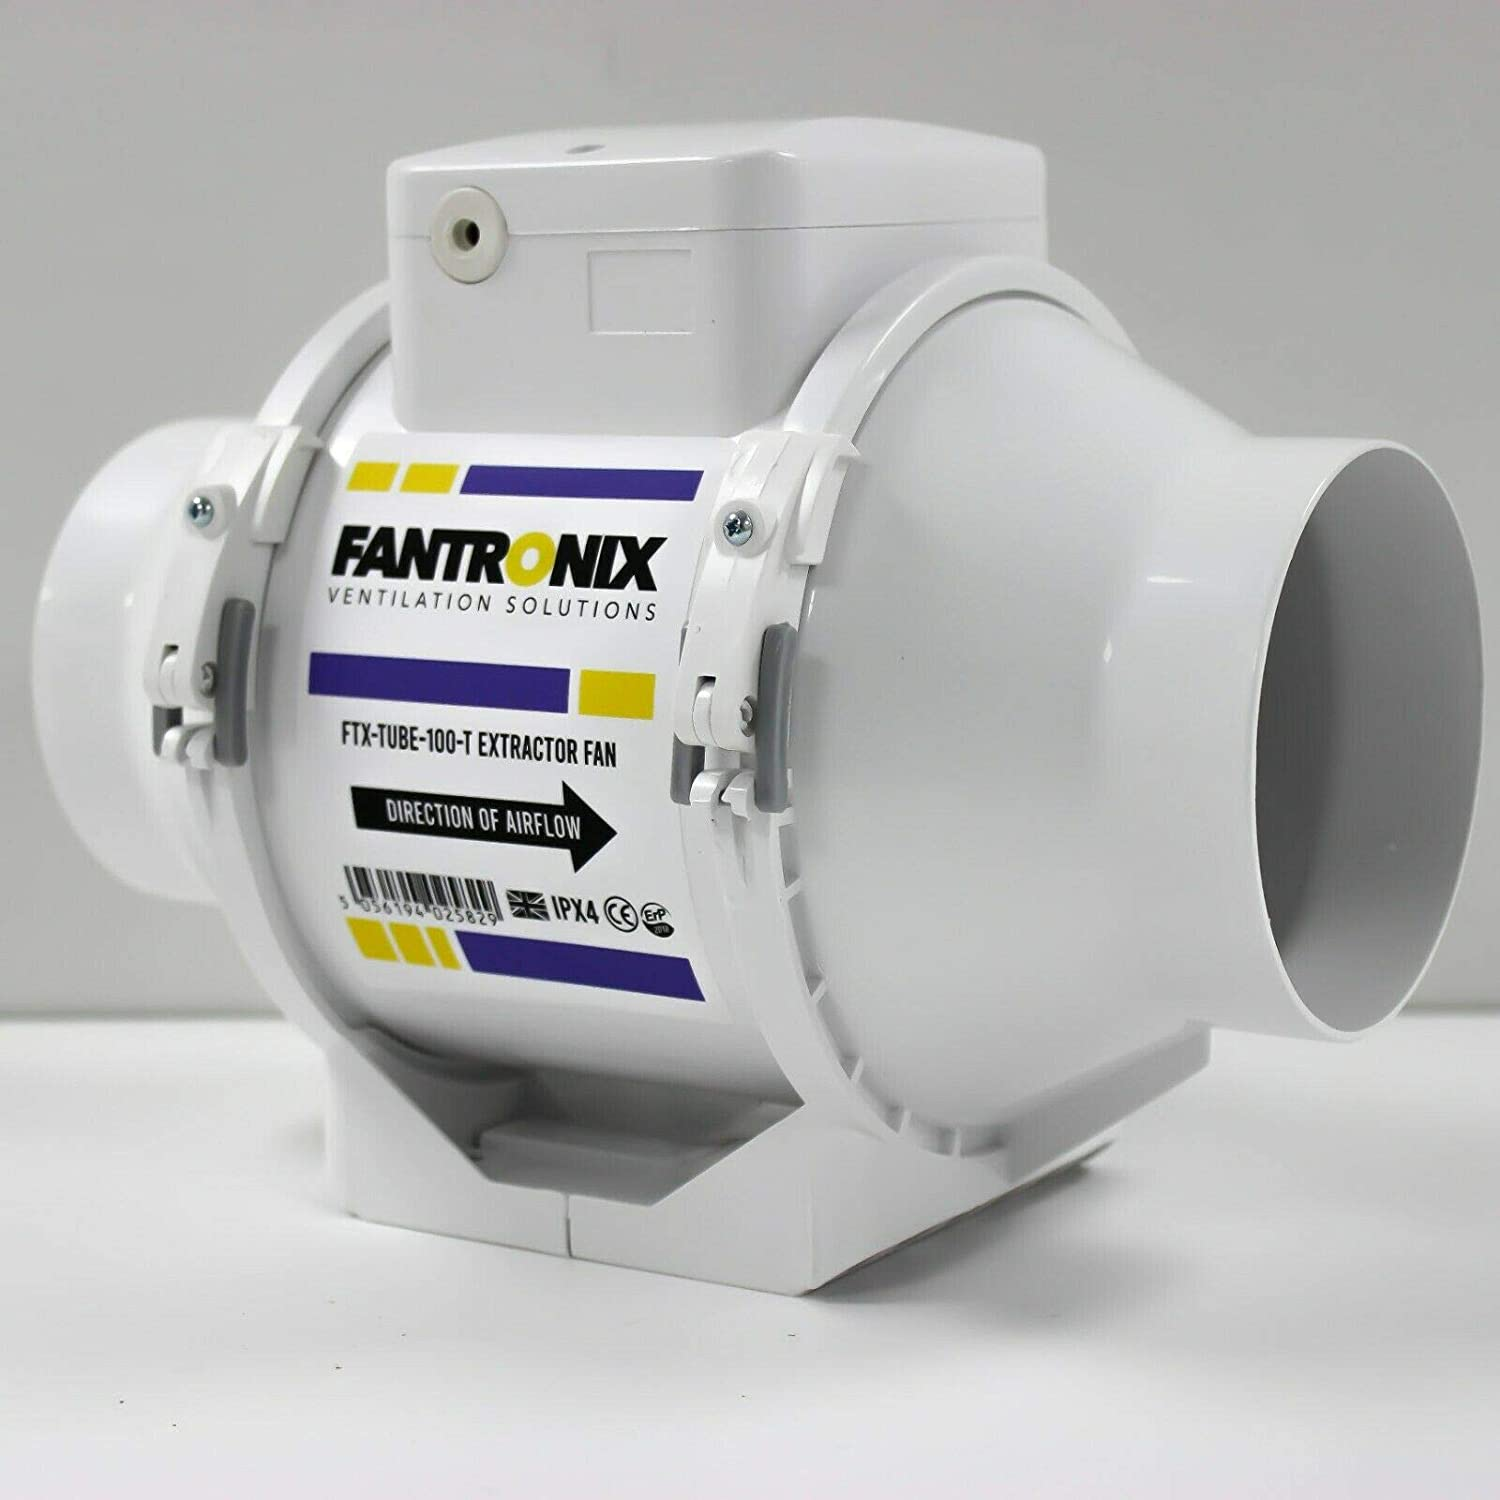 Fantronix FTX-TUBE-100-T Inline Extractor Fan with Overrun Timer